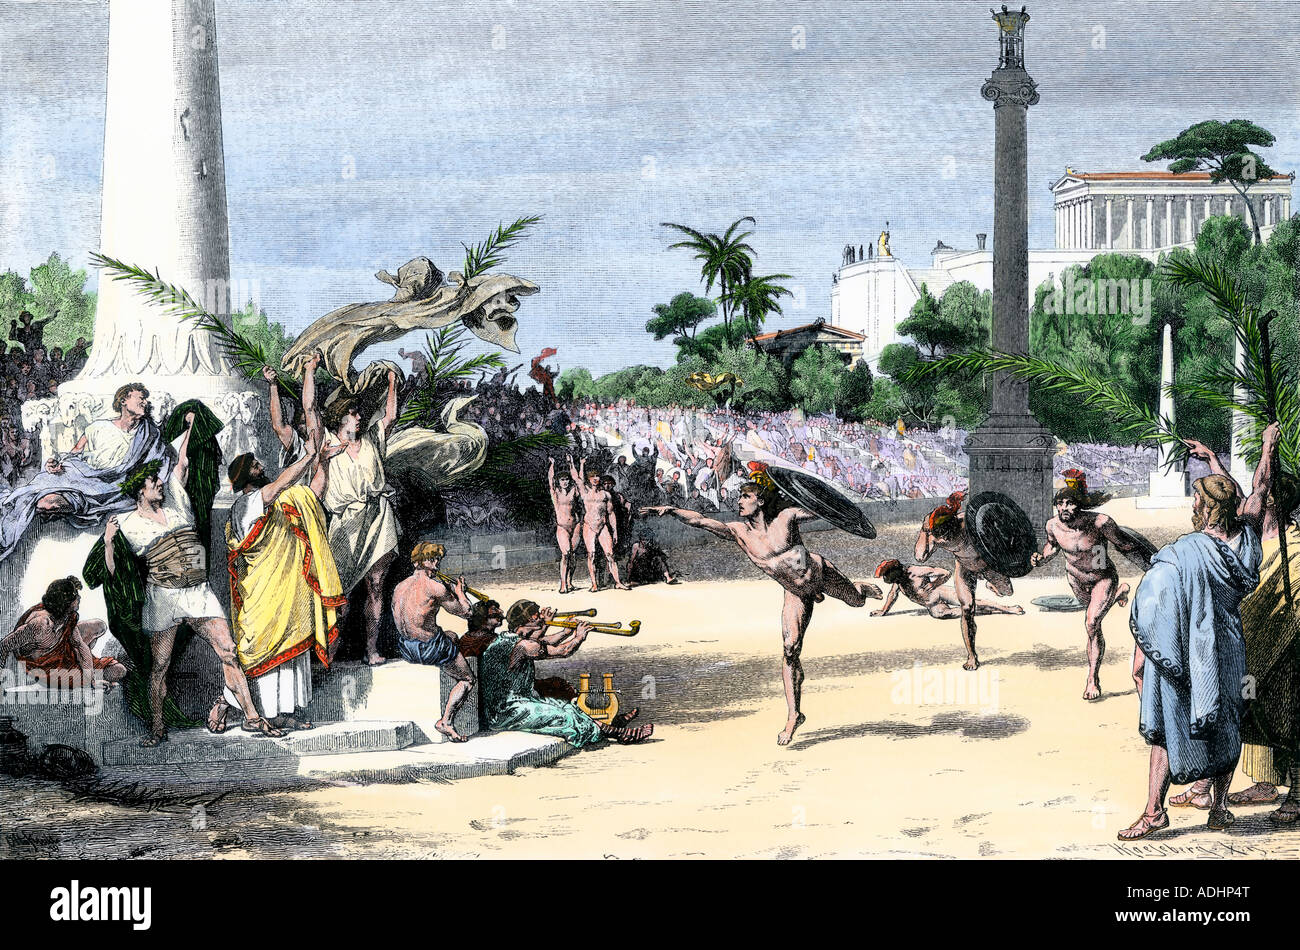 Racers cheered at the finish in the Olympic Games in ancient Greece. Hand-colored woodcut - Stock Image